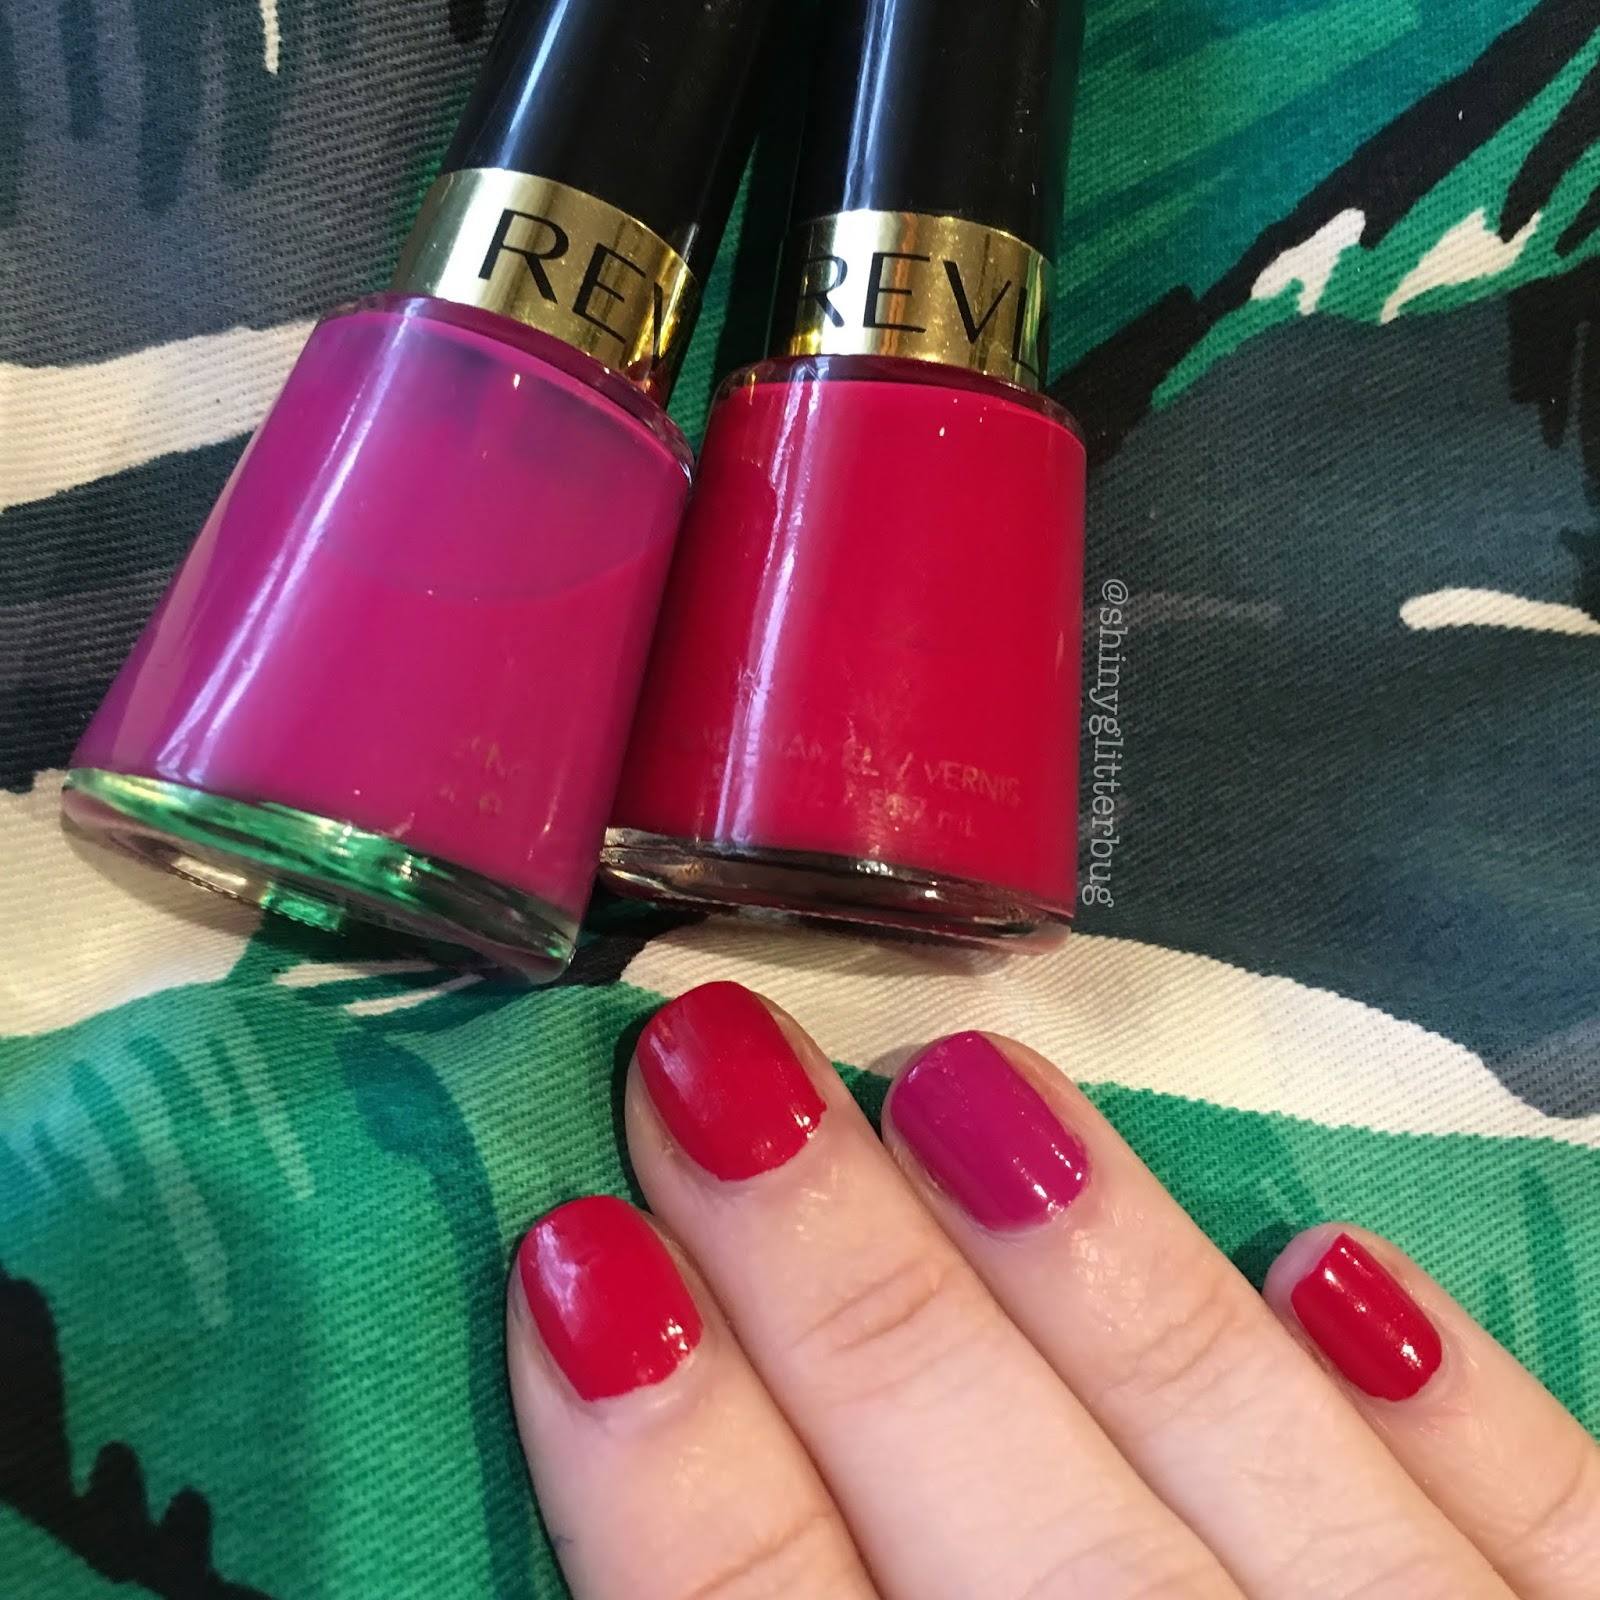 Today I've used two Revlon nail polishes; Cherries In The Snow (the cherry red one) and Plum Seduction (the bright fuchsia one). This mani is Fruity because ...